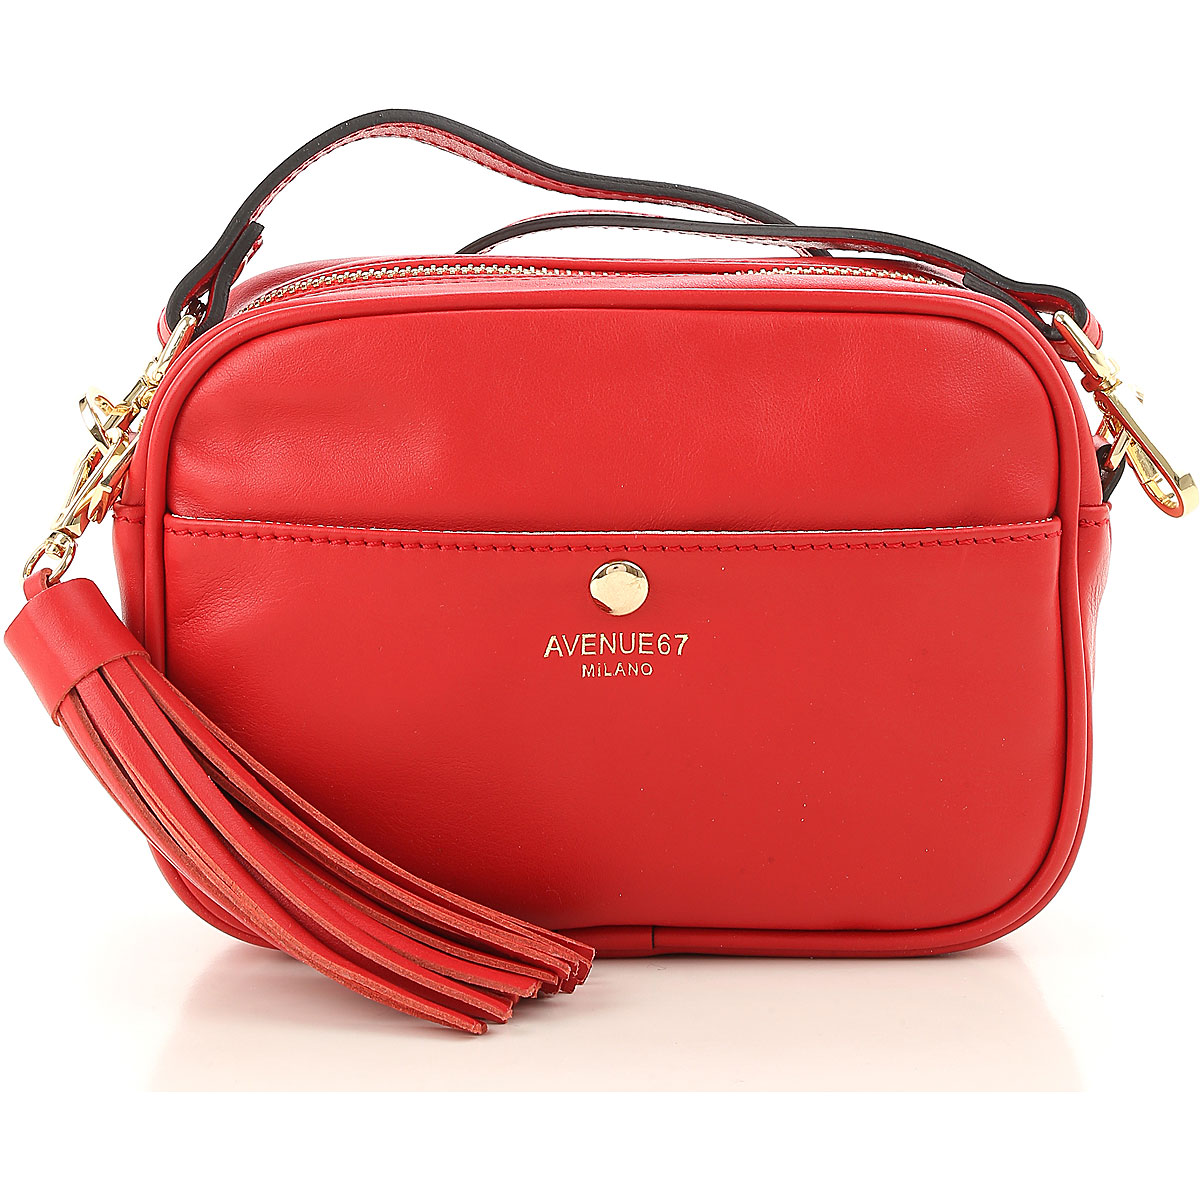 Red Cherie shoulder bag AVENUE 67 rjefpVoHFB